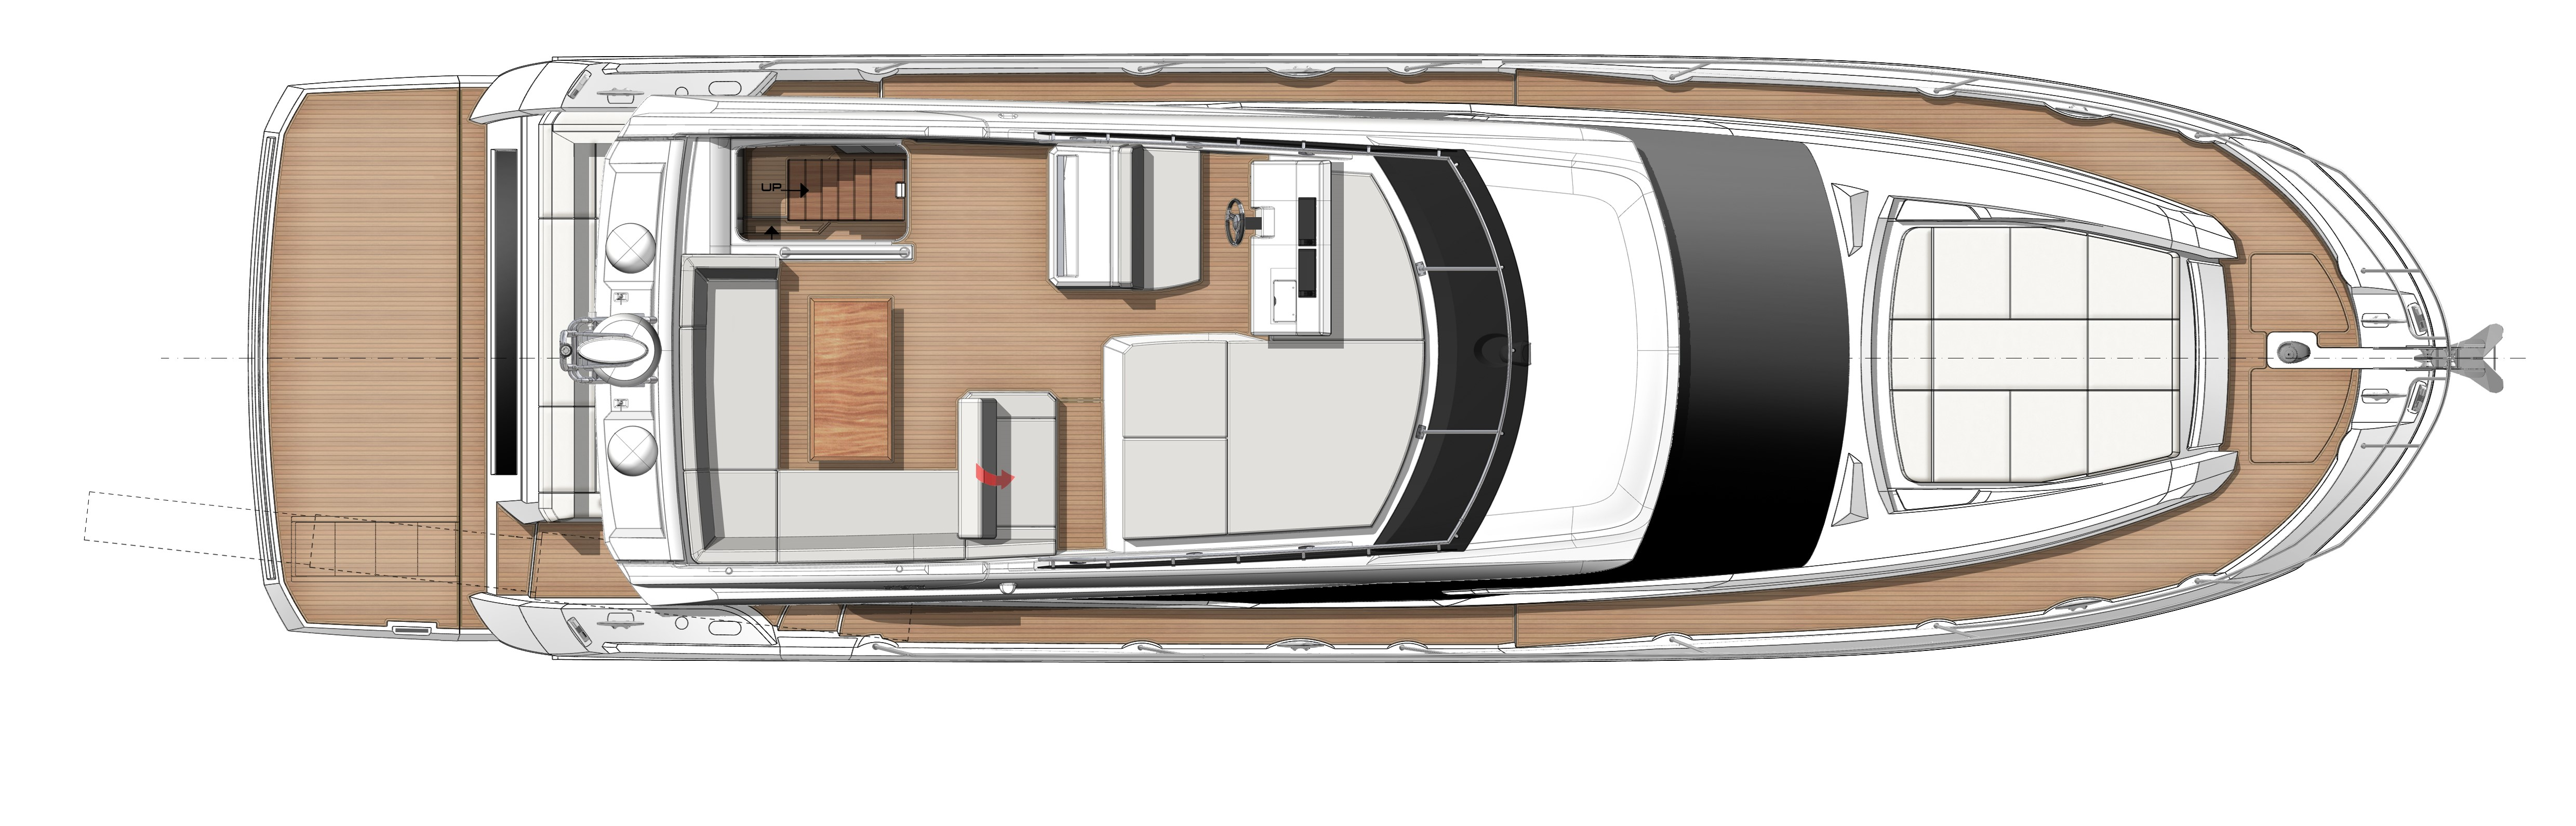 Prestige 520 For sale - Prestige 520 layout flybridge